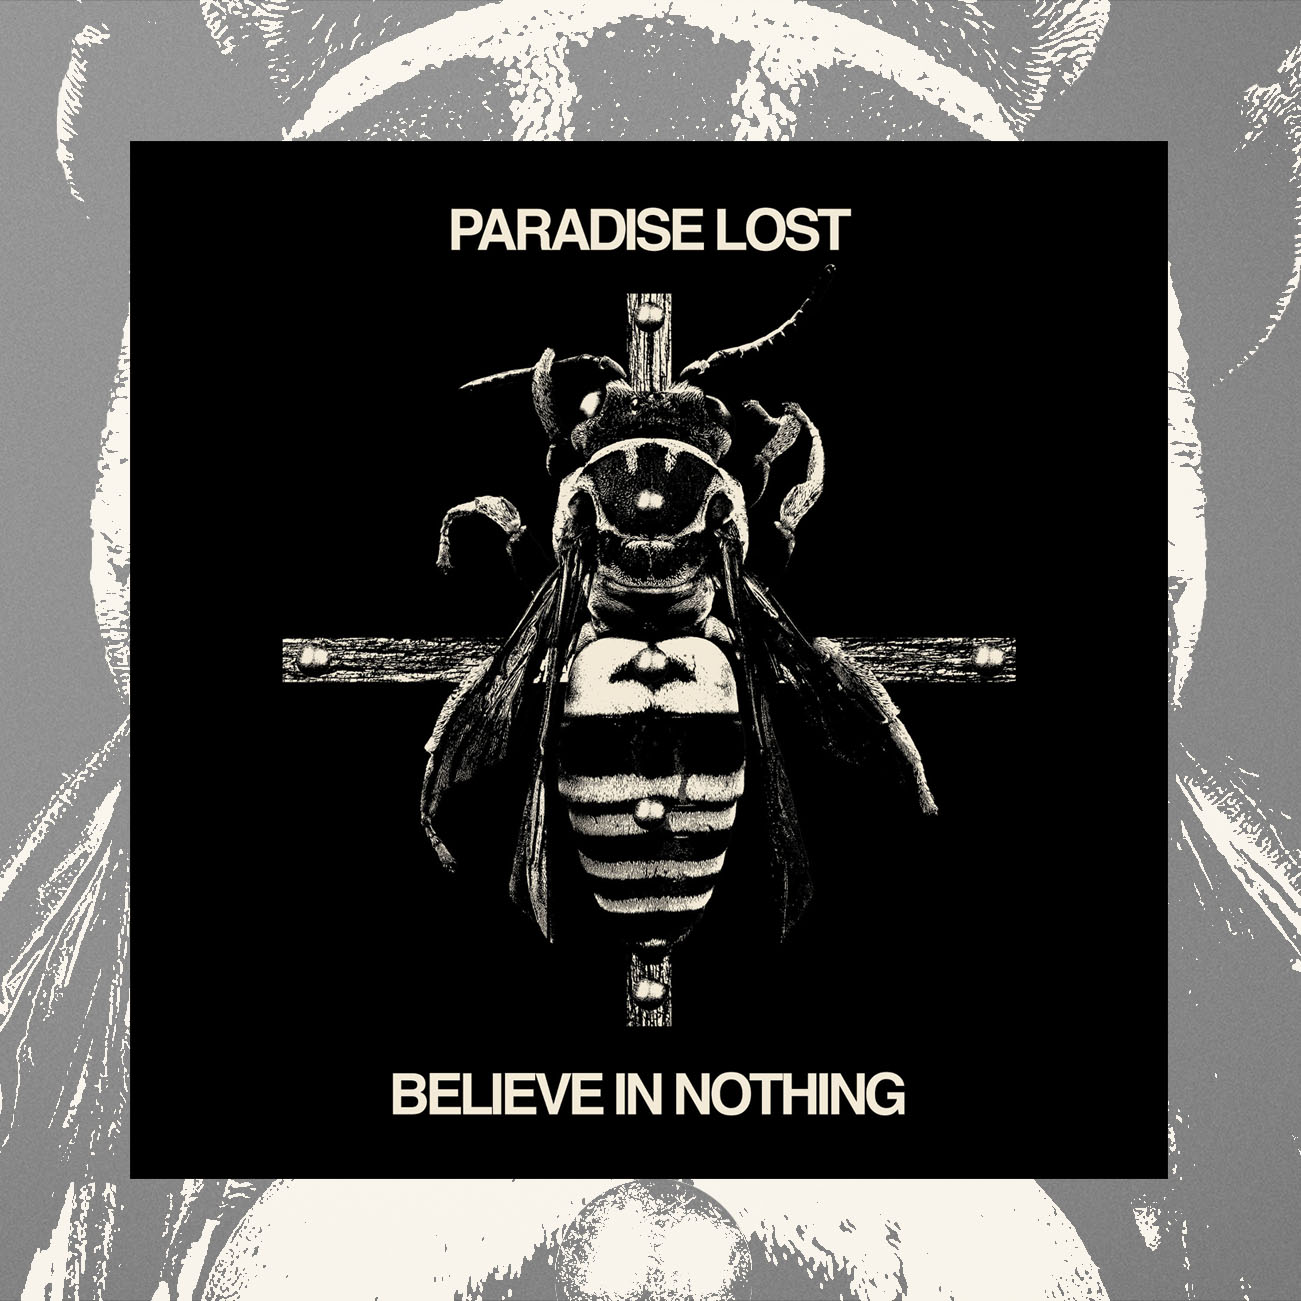 Paradise Lost - 'Believe In Nothing' Remixed & Remastered Digipack CD - Paradise Lost